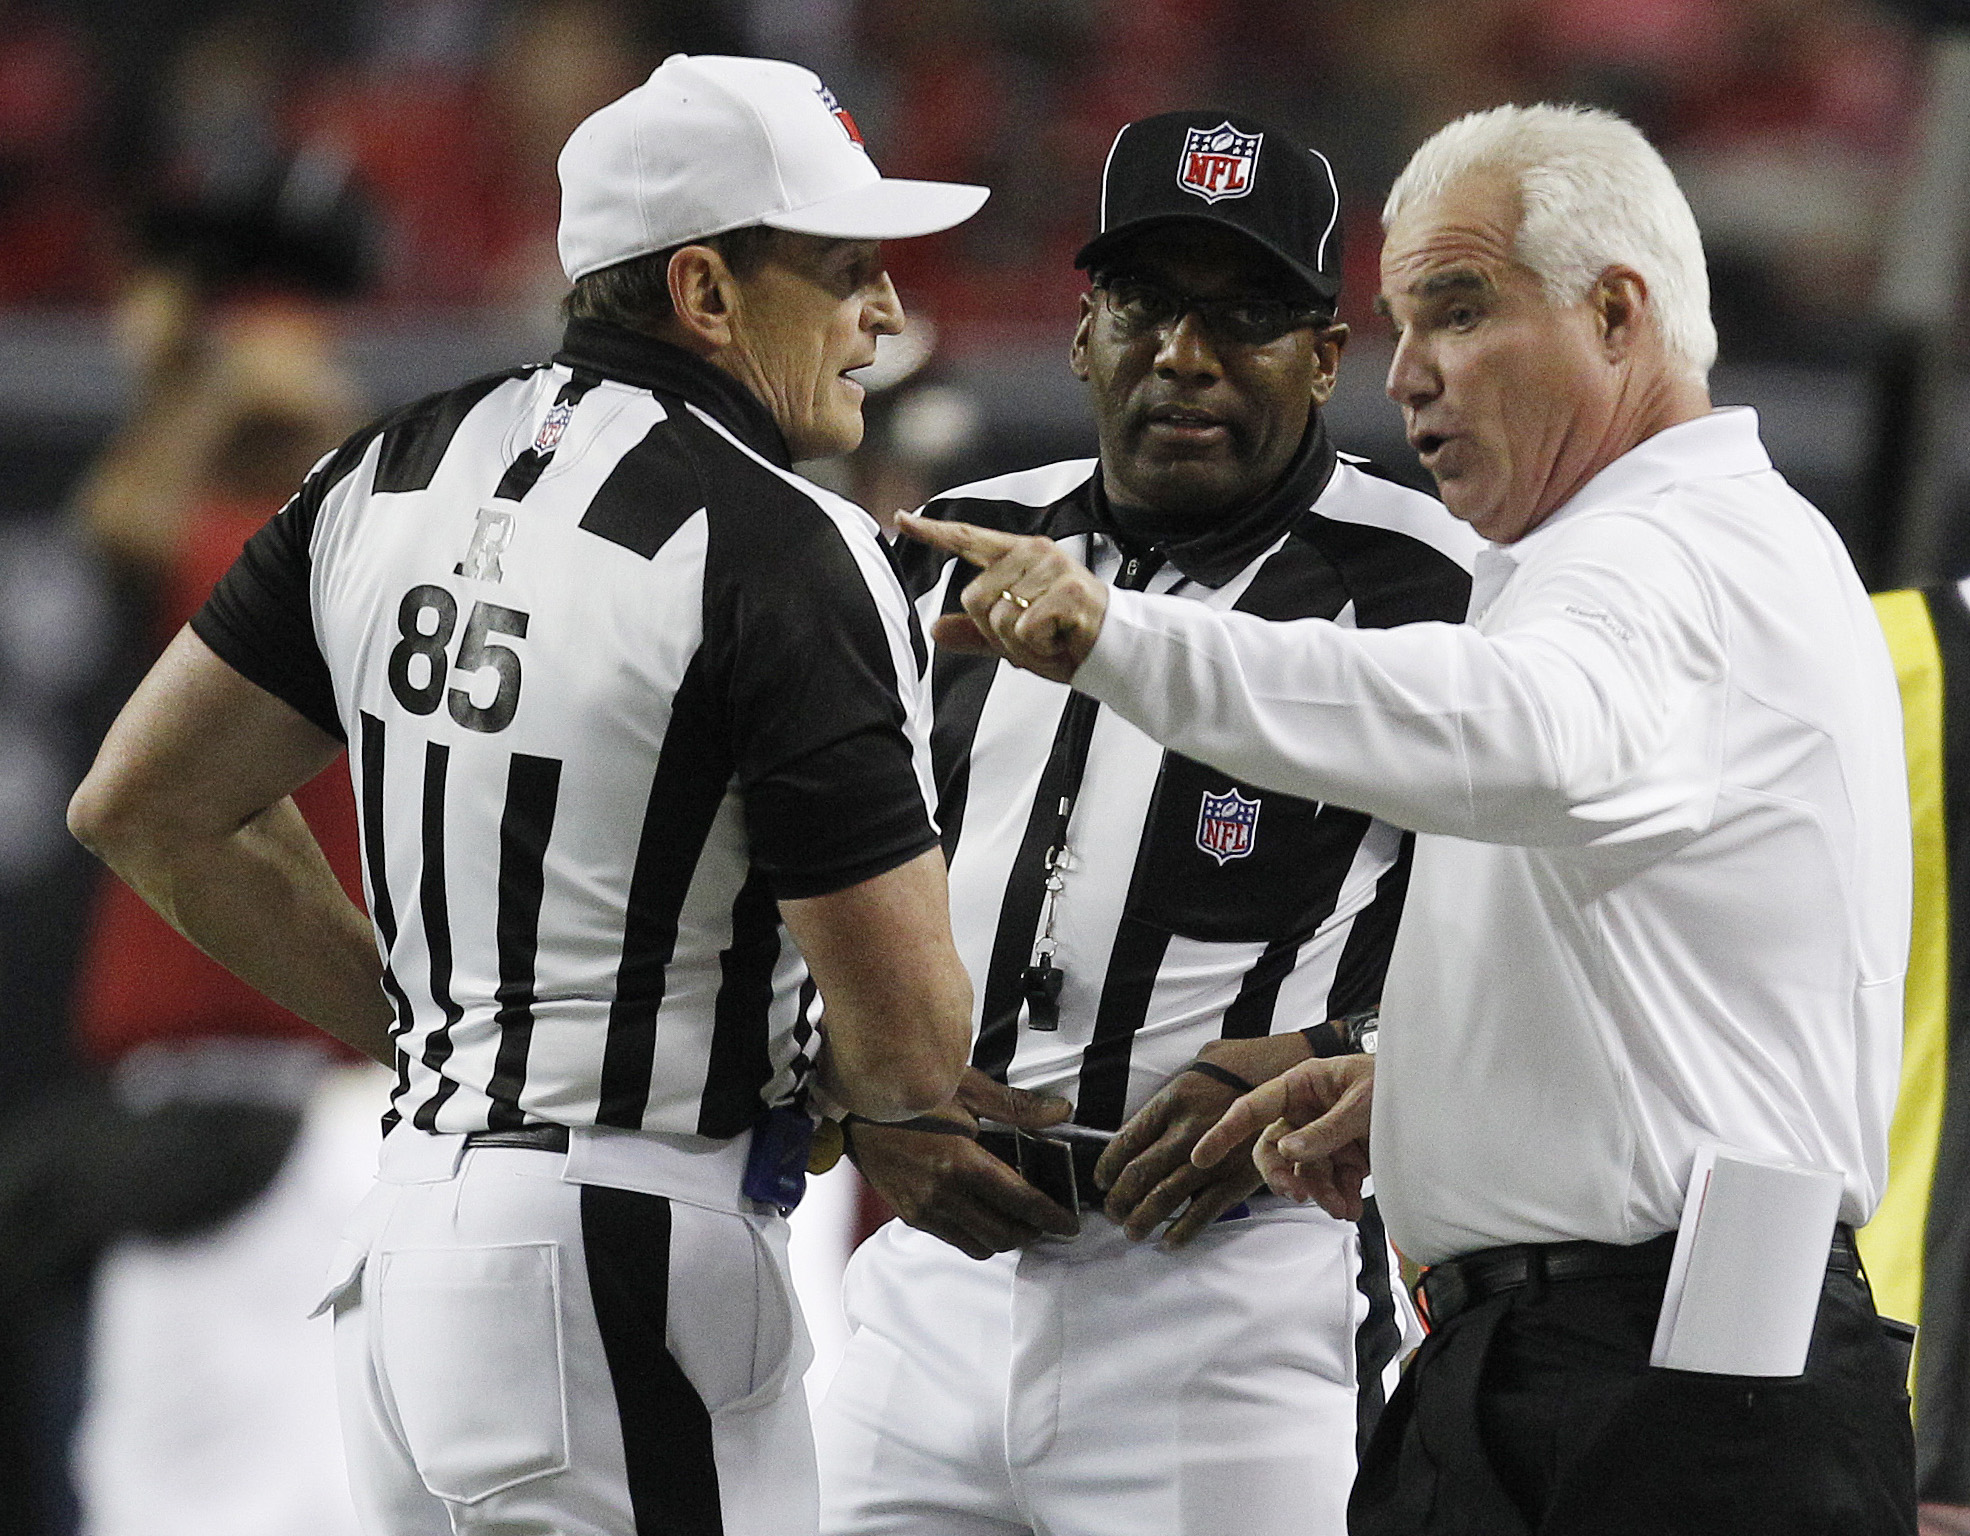 Referee Ed Hochuli (85) dispenses justice with Falcons coach Mike Smith during a game. (AP)